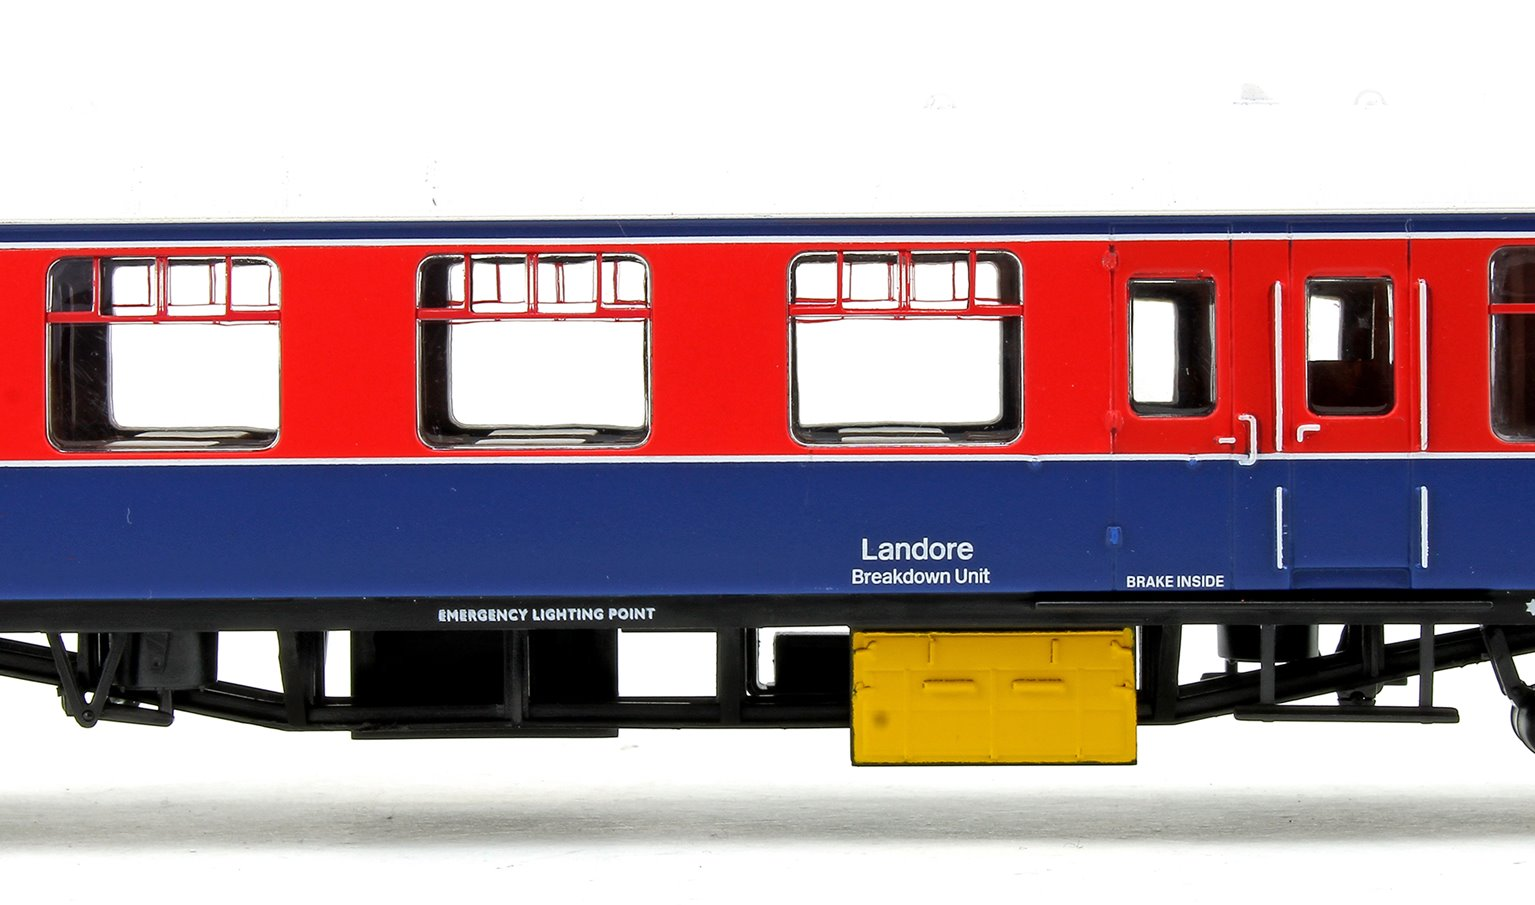 BR Departmental, ex-Mk1 BSO Landore Breakdown Unit, ADB 975082